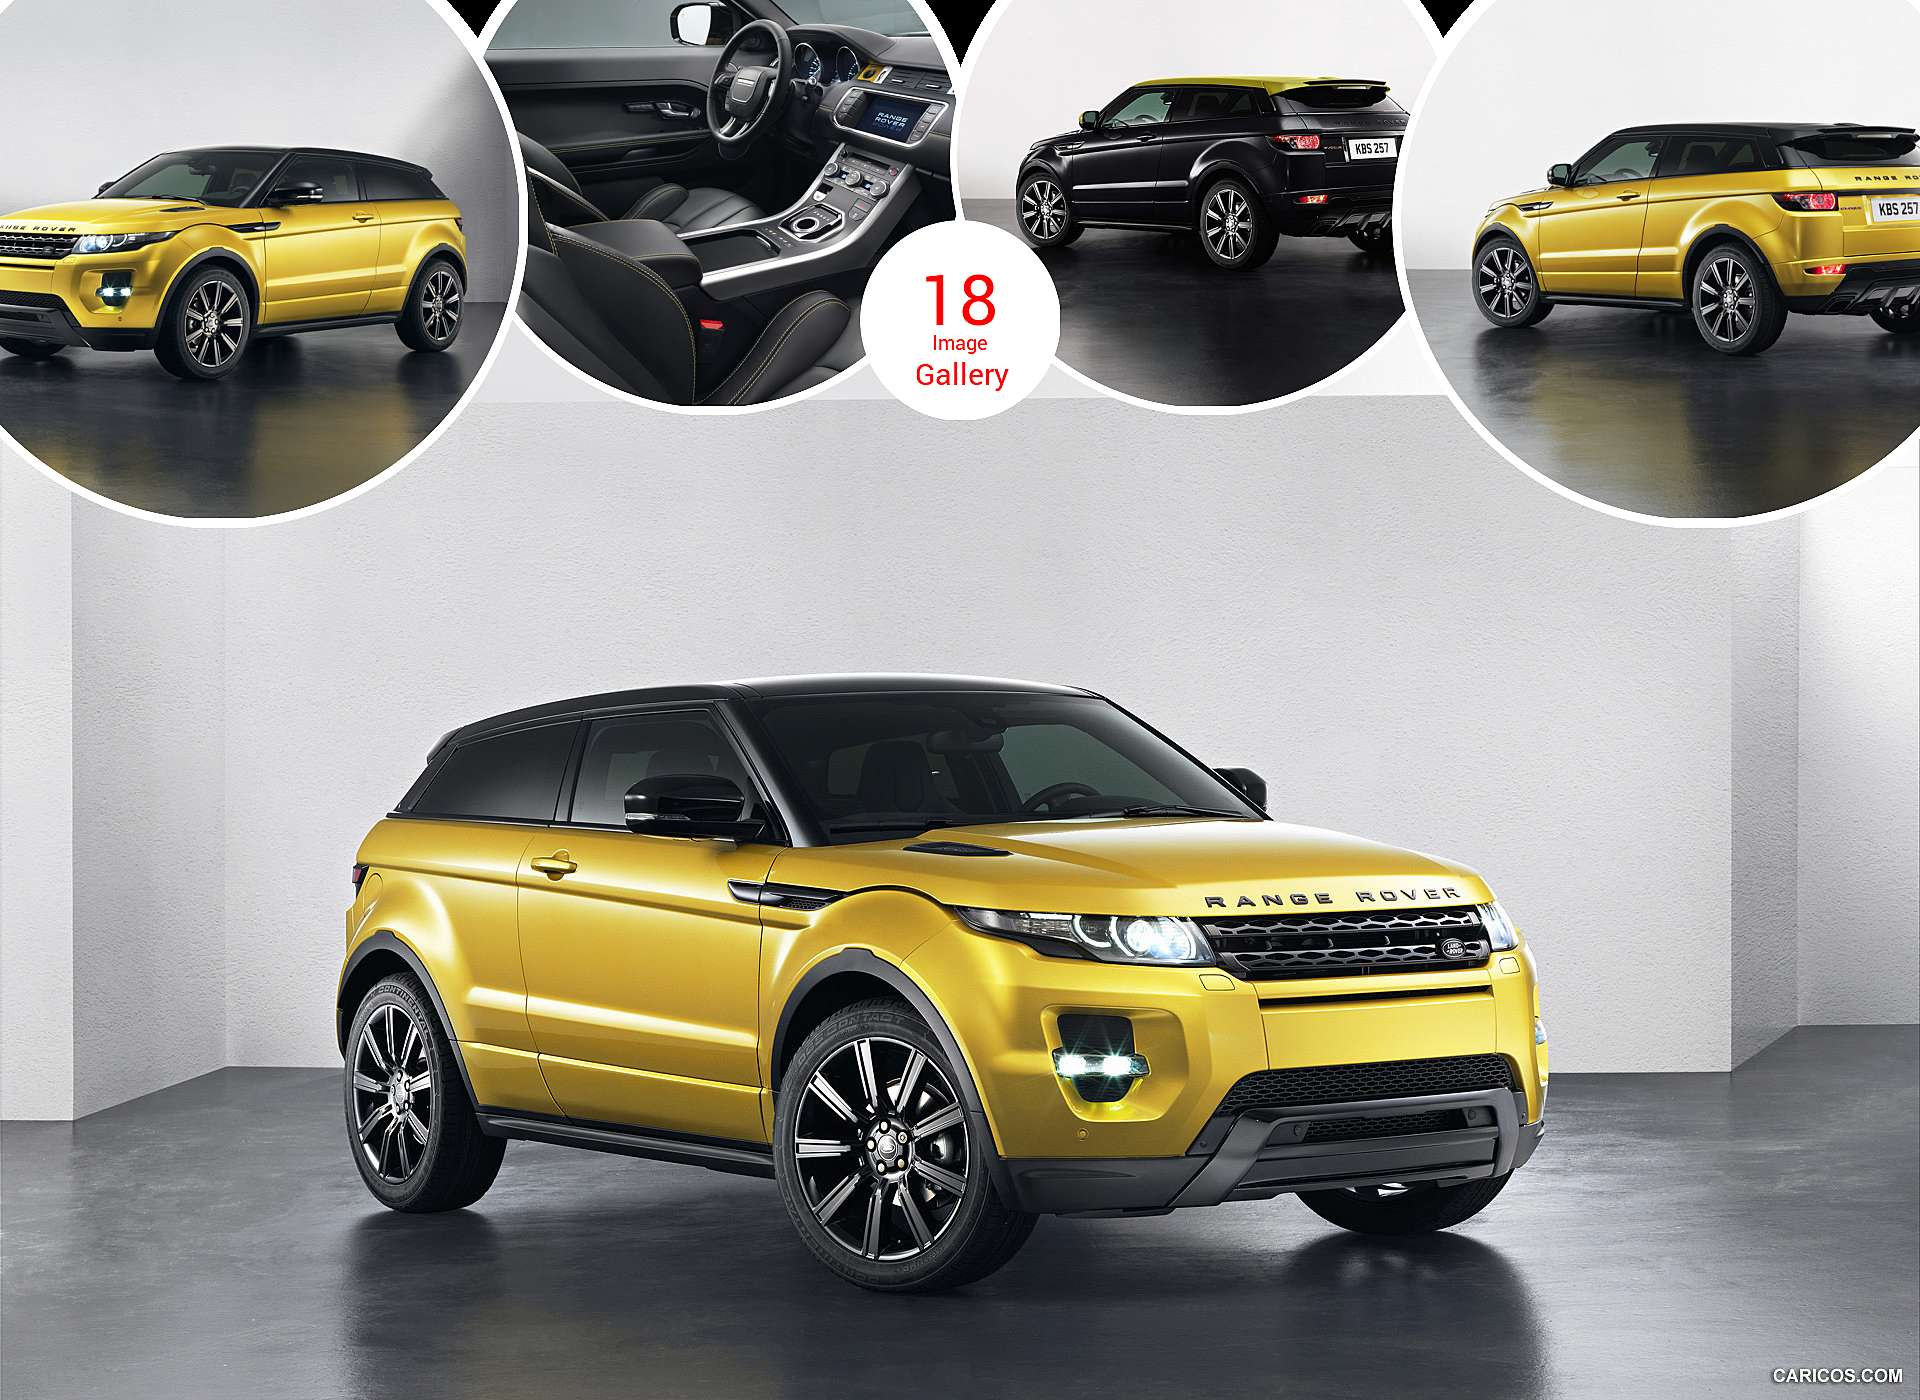 http://img3.caricos.com/gallerypreview/2013_range_rover_evoque_limited_edition.jpg?make=land_rover